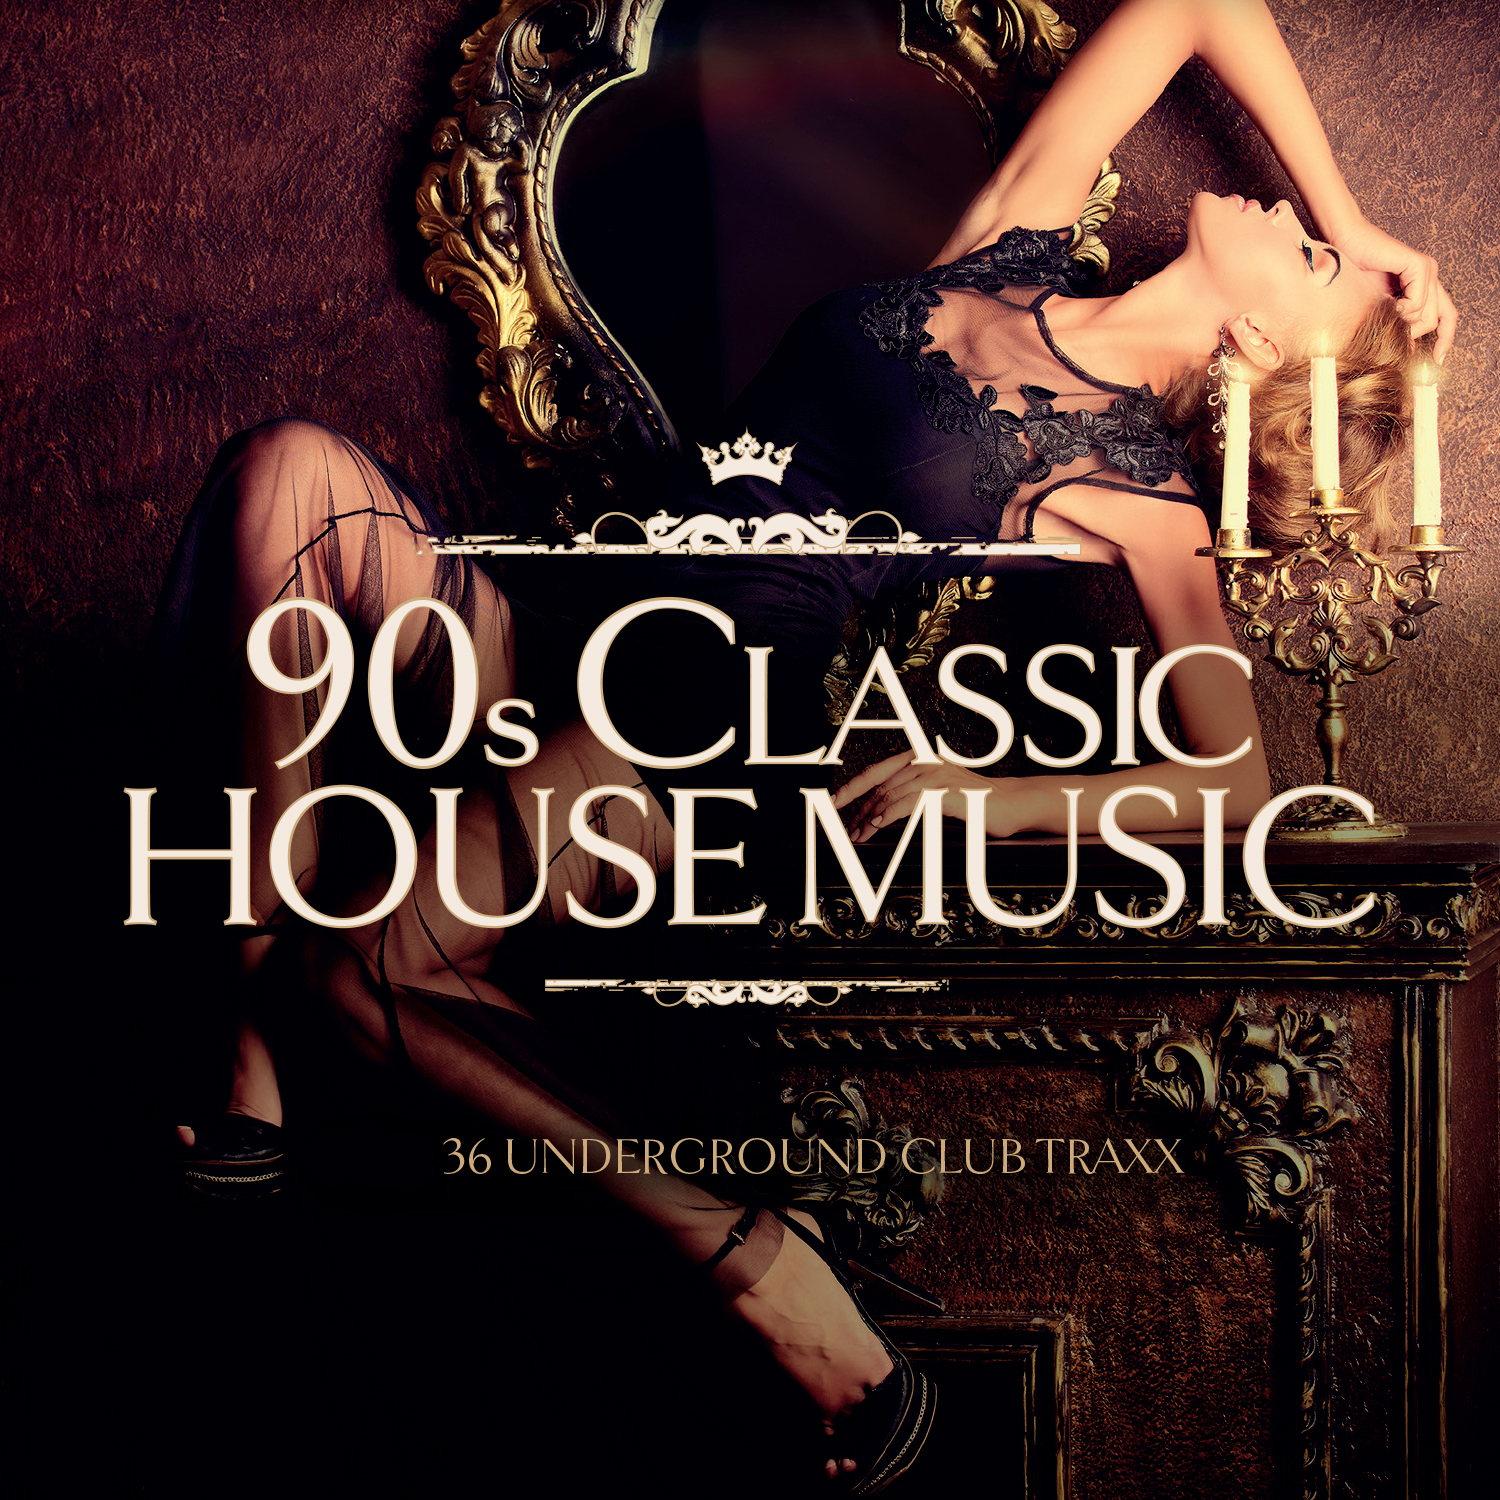 Il triplo cd di 90s classic house music finalmente for Album house music